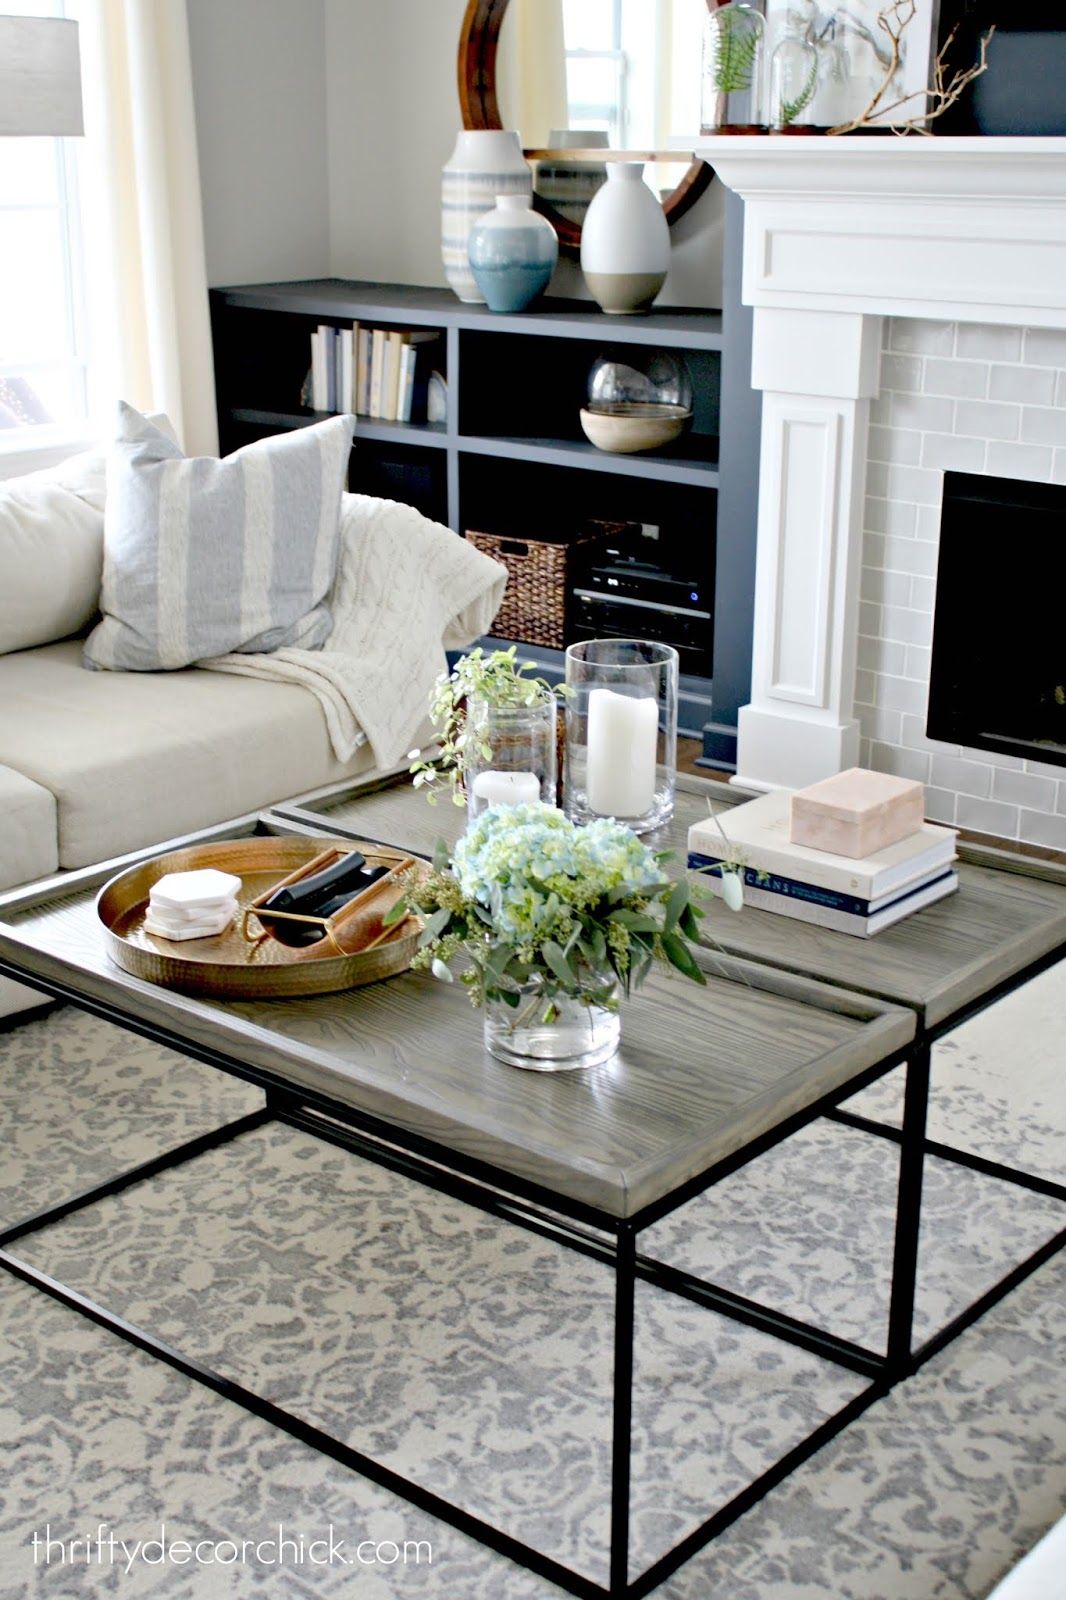 Using two long coffee tables together to make a large one